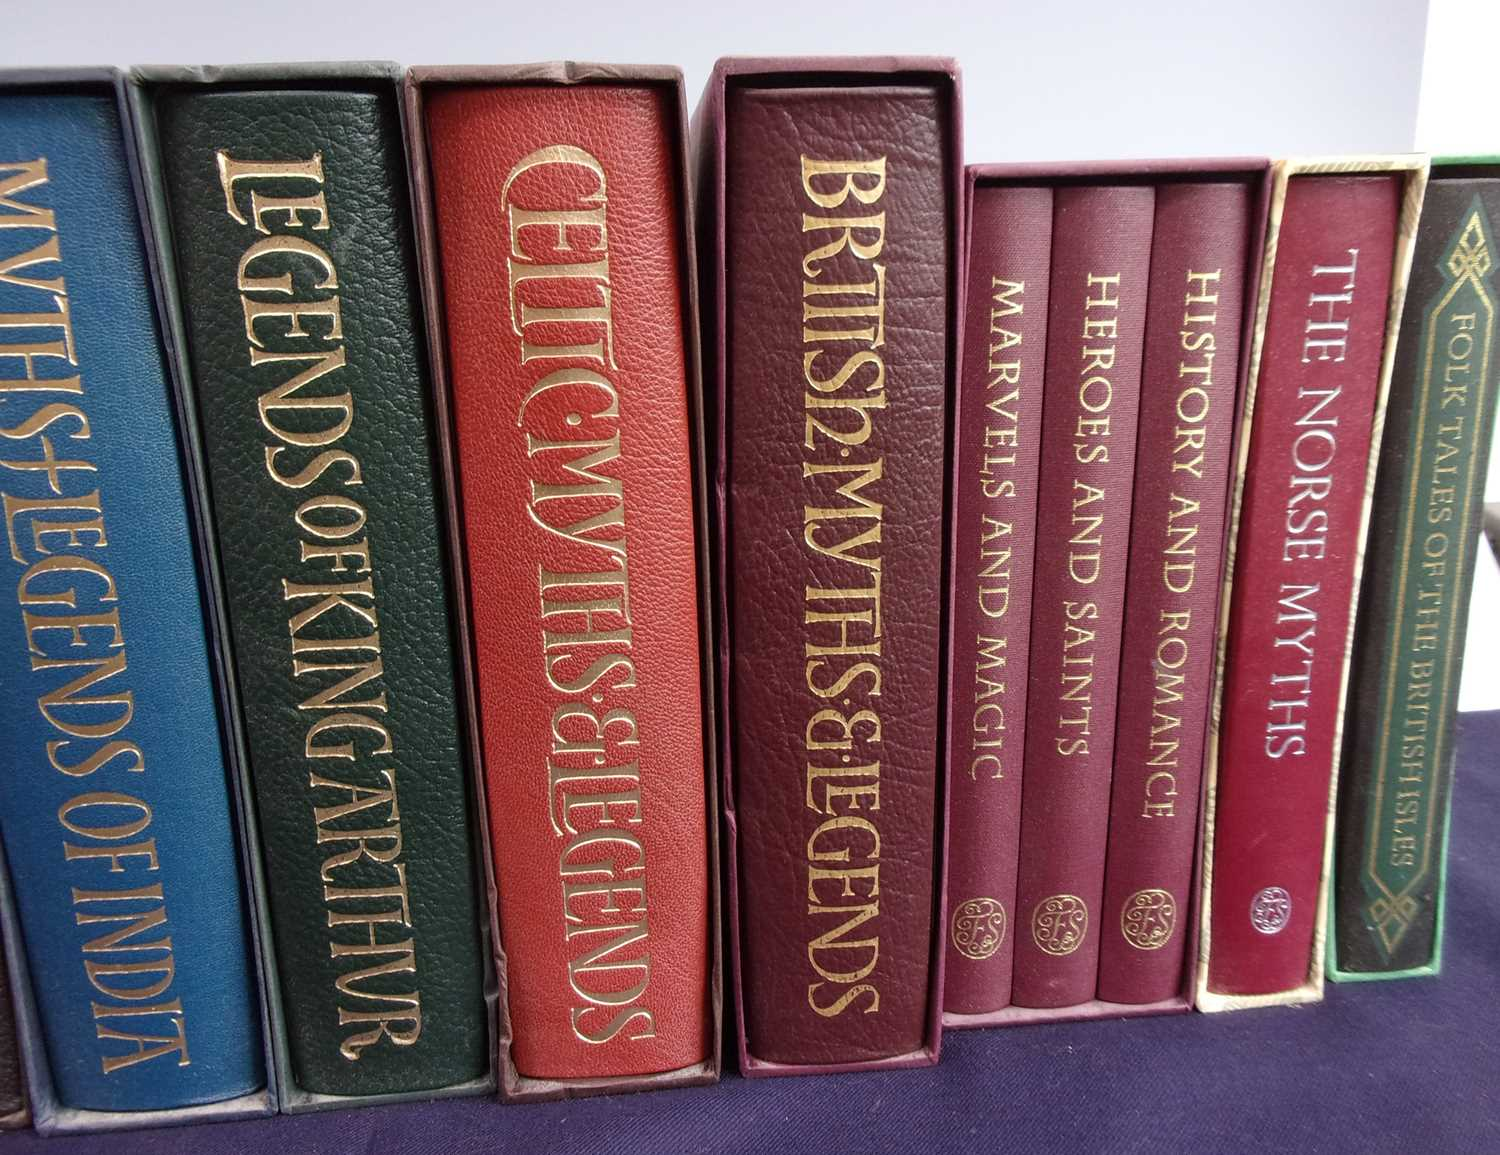 A Collection of Folio Society Myths and Legends to include Icelandic Sagas (2 vols), Greek Myths, - Image 3 of 3